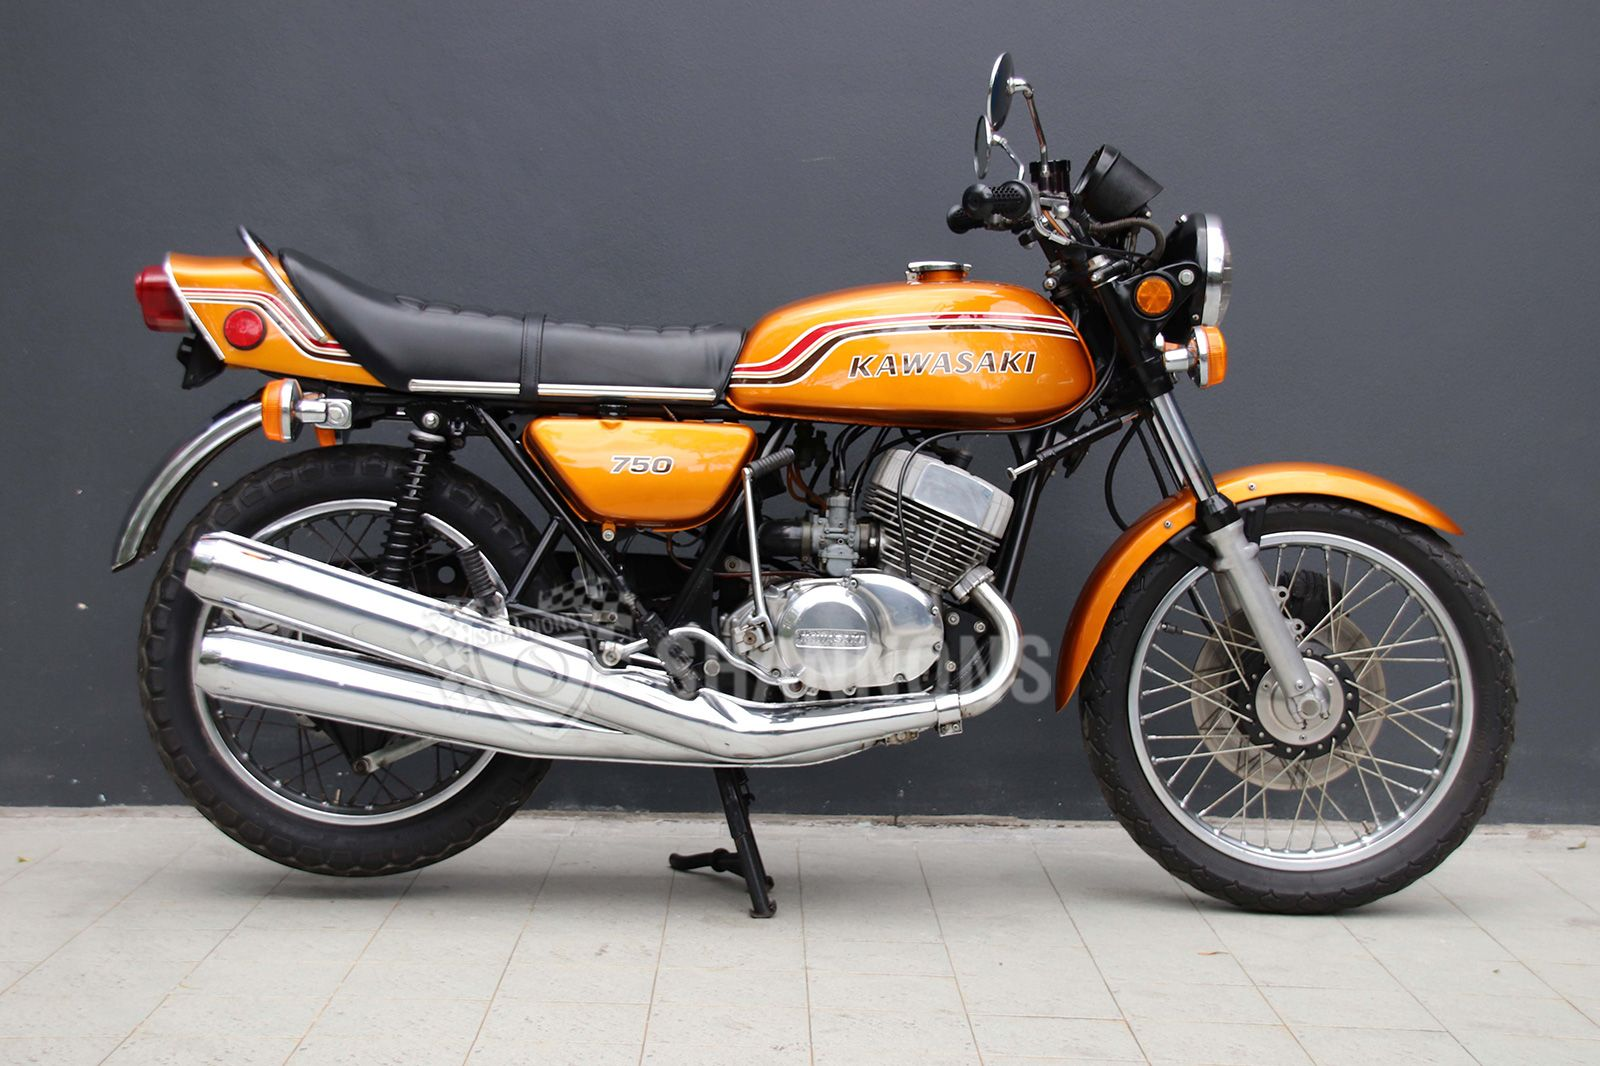 Kawasaki H2 - Arguably One of the Finest Bikes Ever Made